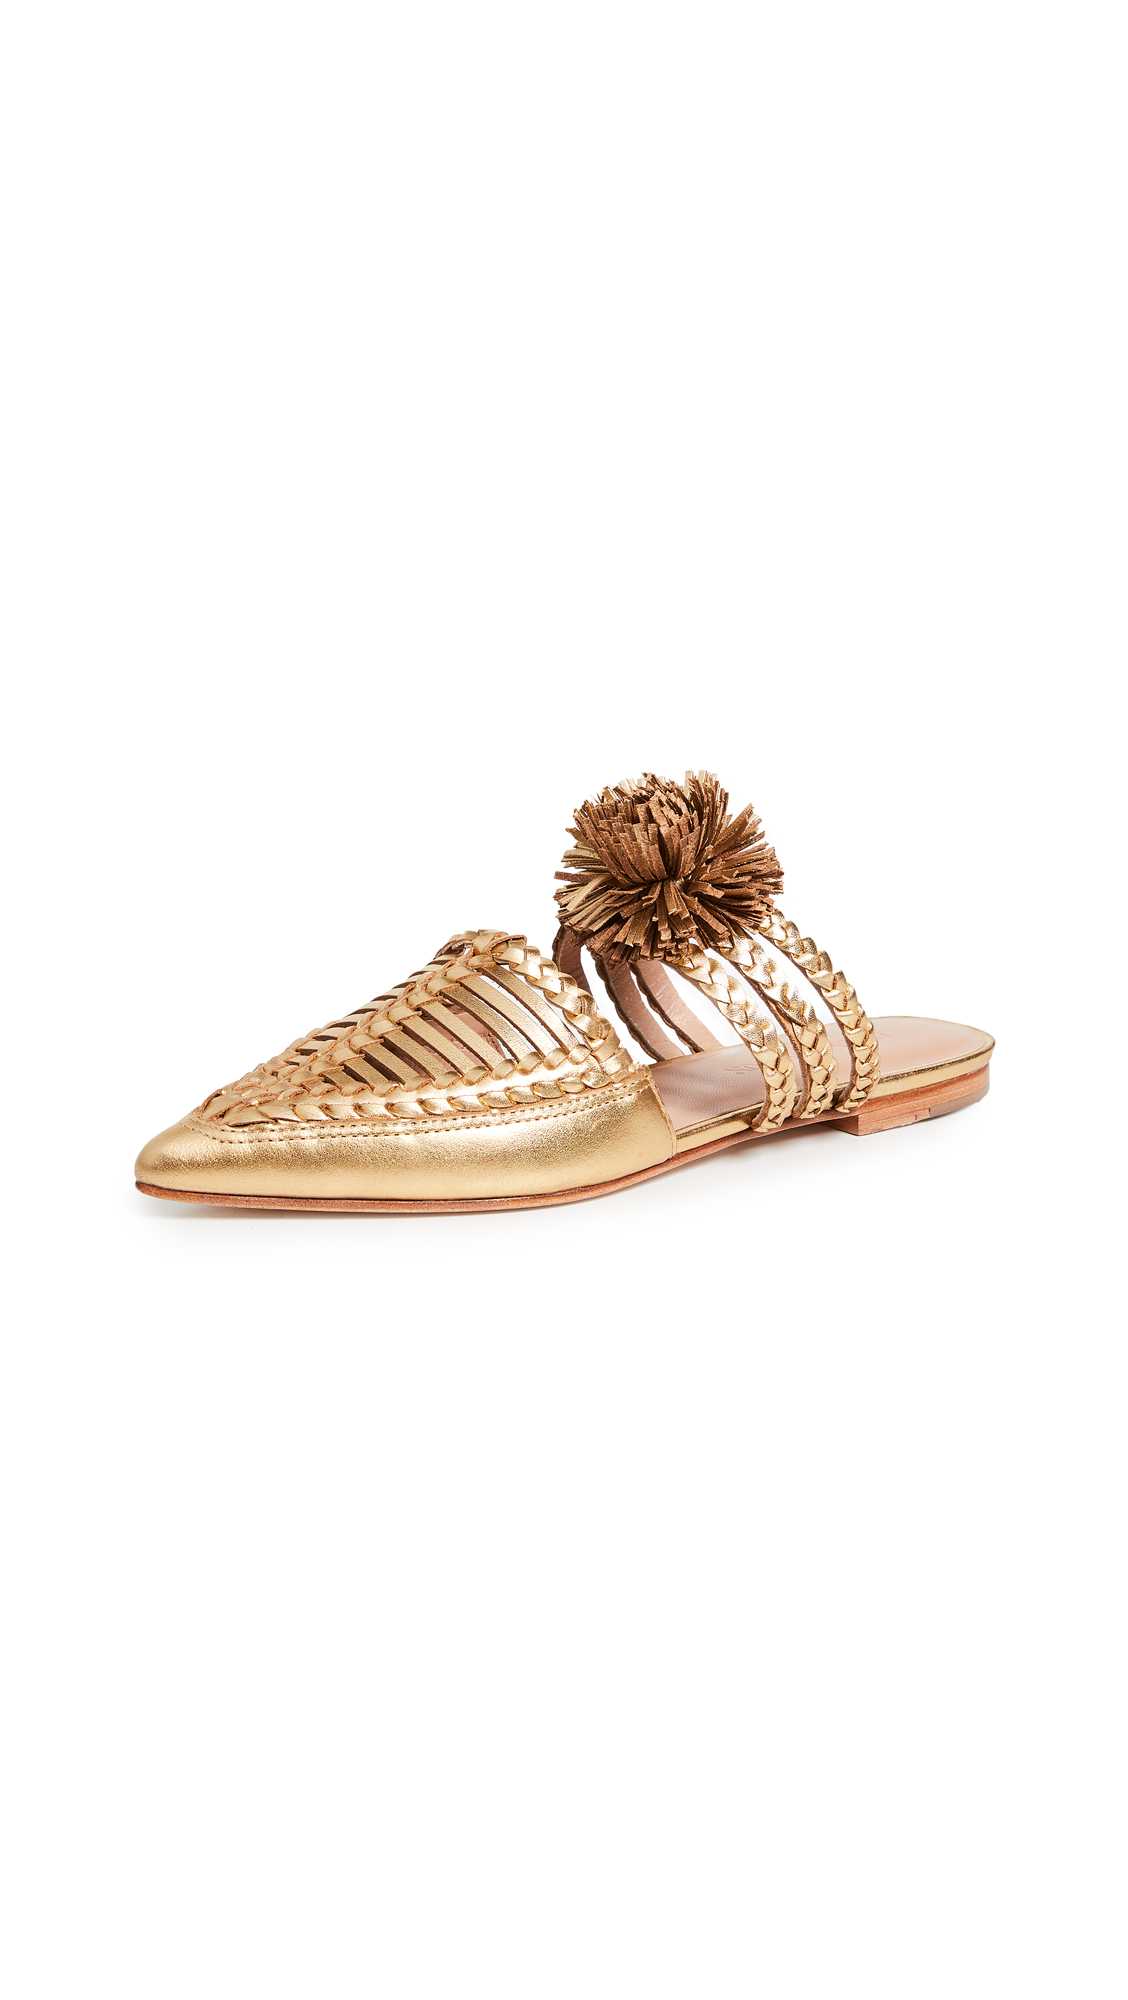 Ulla Johnson Marah Flat Mules - Gold